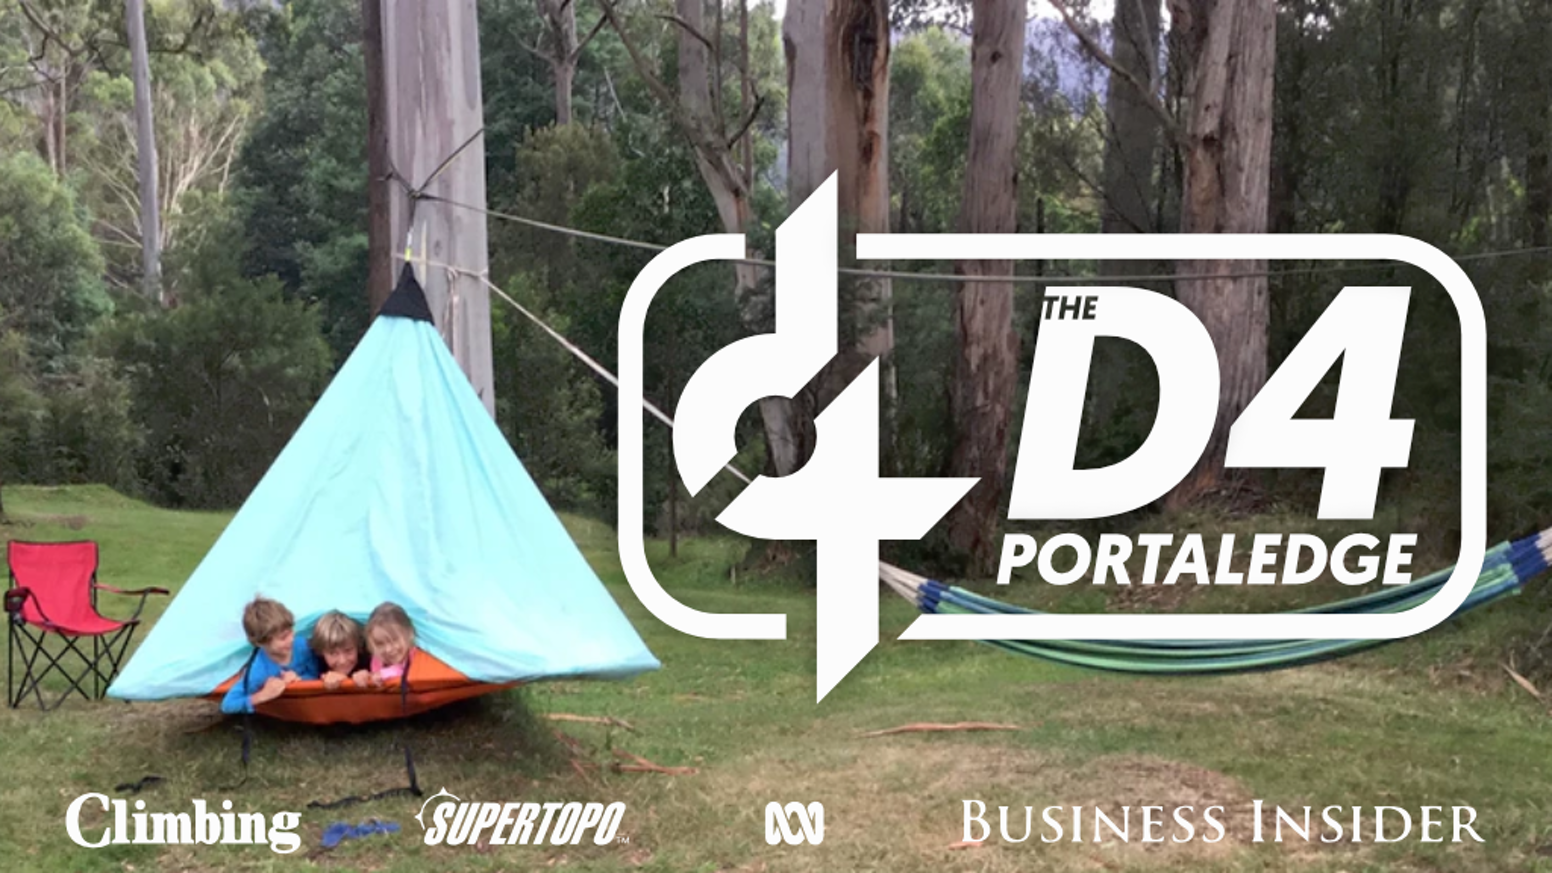 The World's lightest portaledge is back. And better. The D4 Portaledge is stronger, lighter and ready for your next big wall adventure!